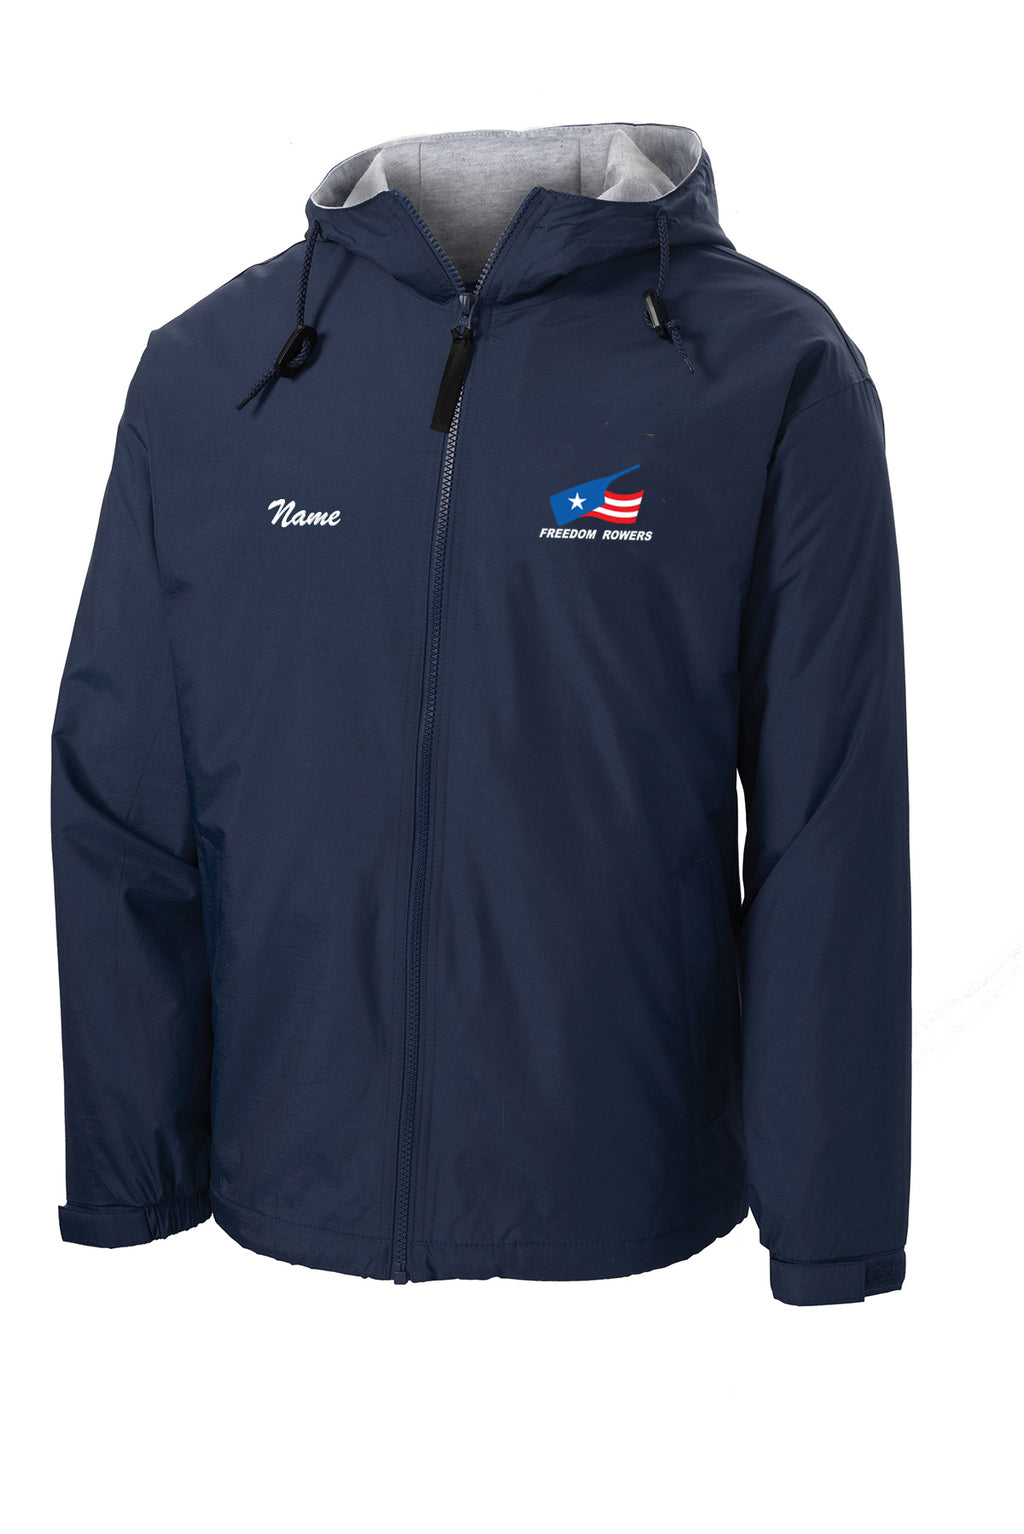 Freedom Rowers Team Spectator Jacket